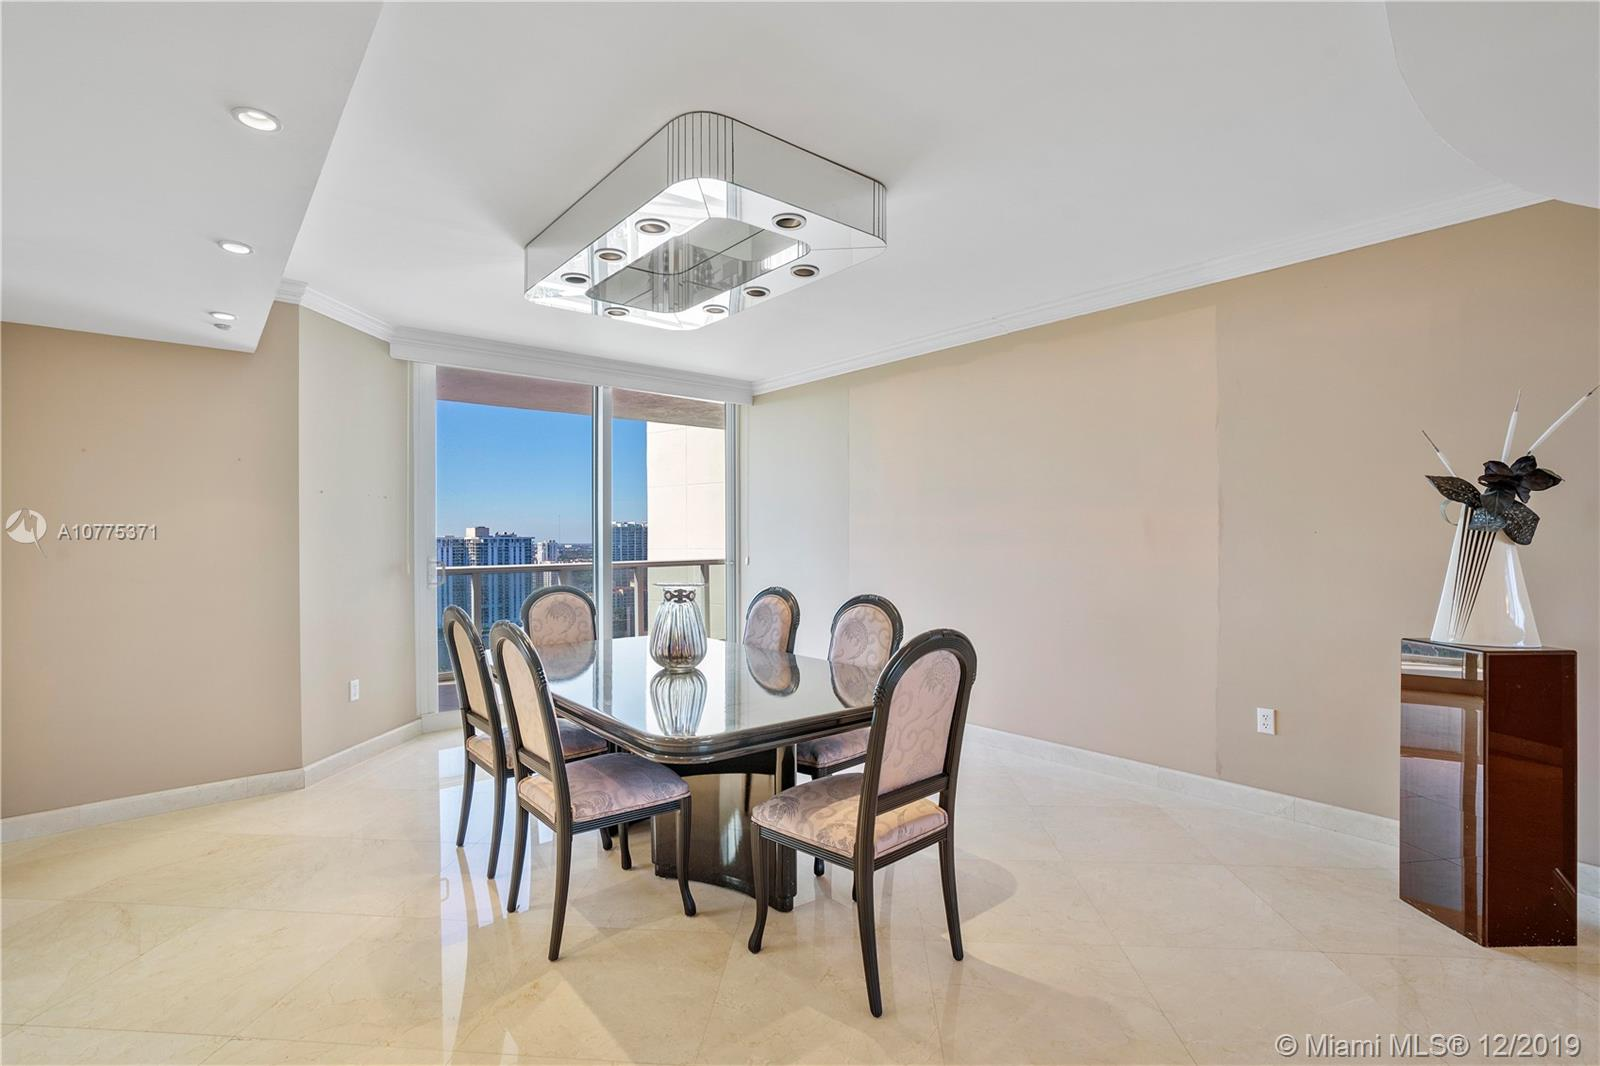 19333 Collins Ave 2905, Sunny Isles Beach, FL 33160